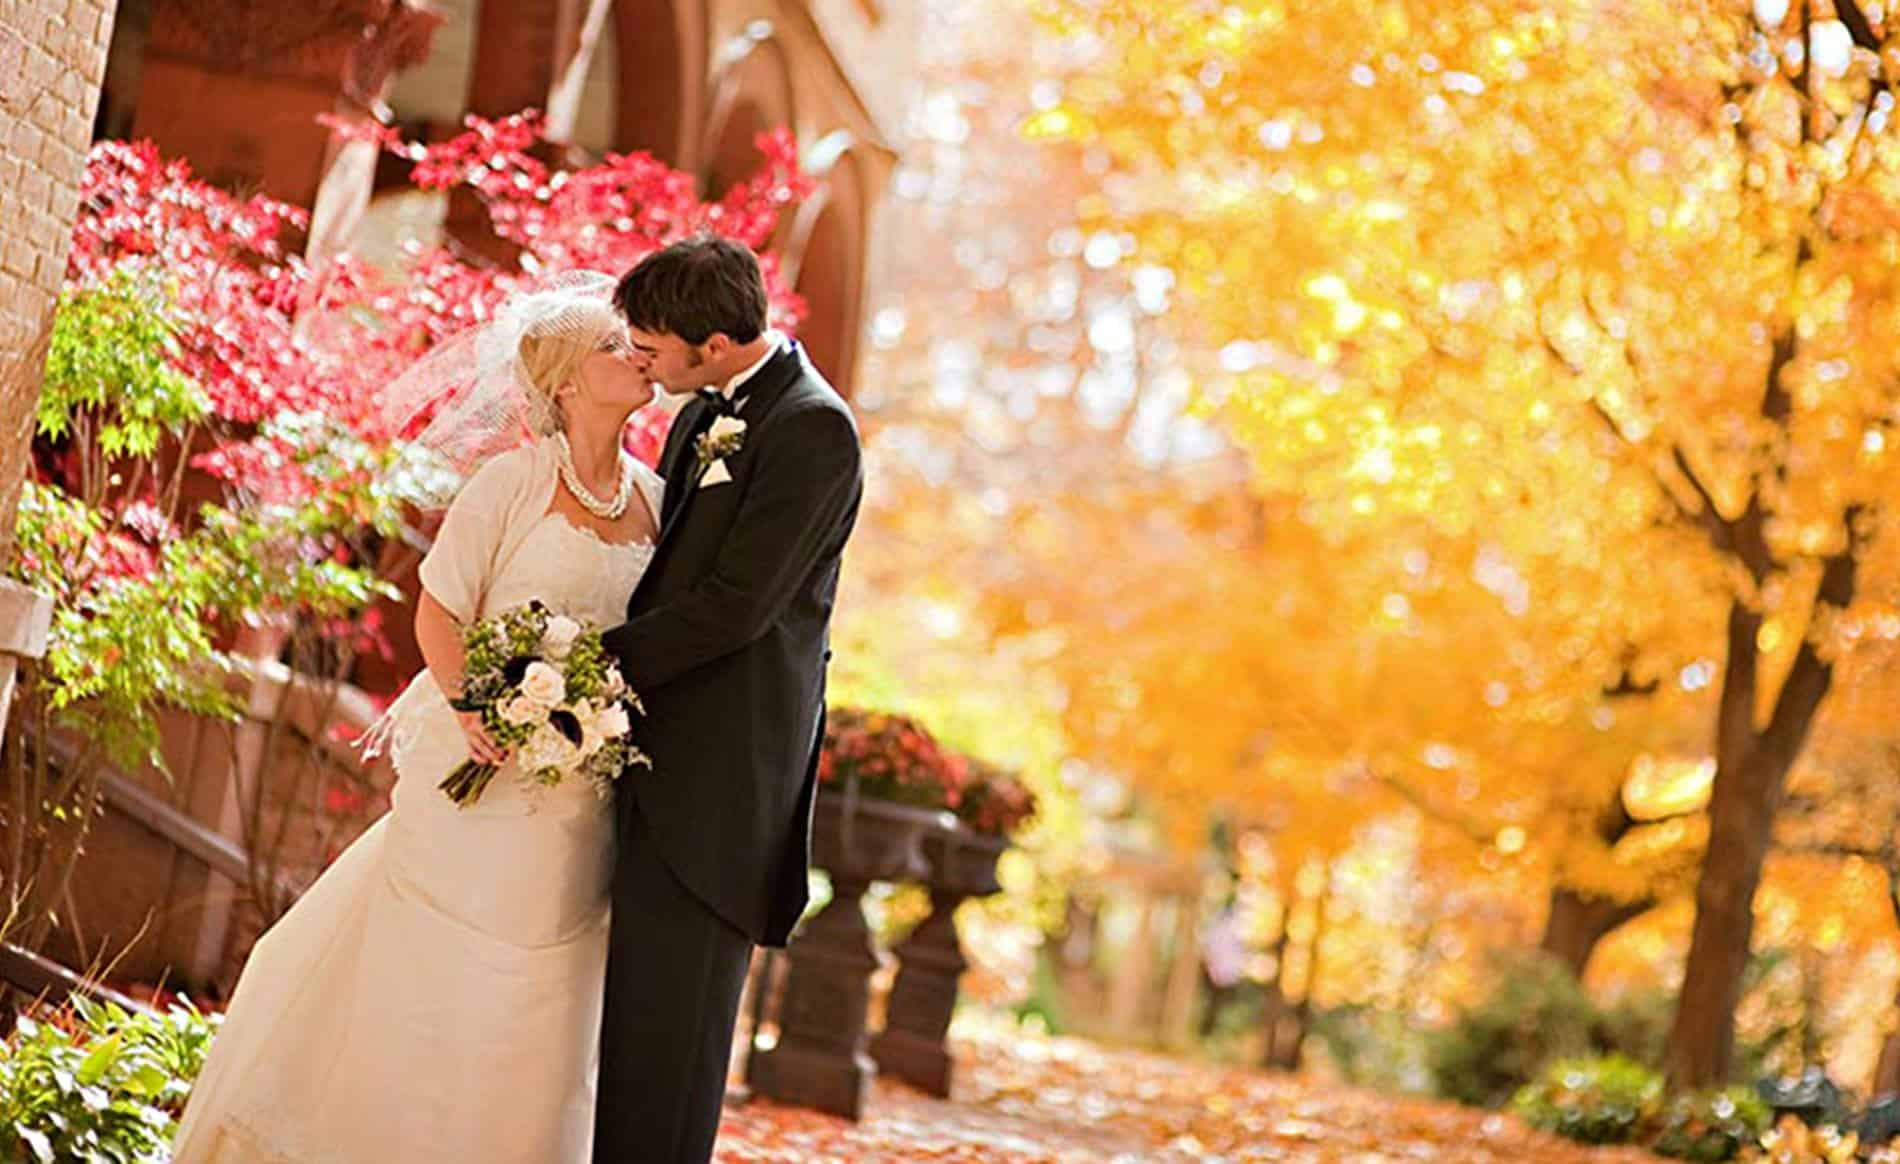 Groom kissing bride in ivory dress and veil outside the mansion surrounded by yellow, orange, red and green leafed trees